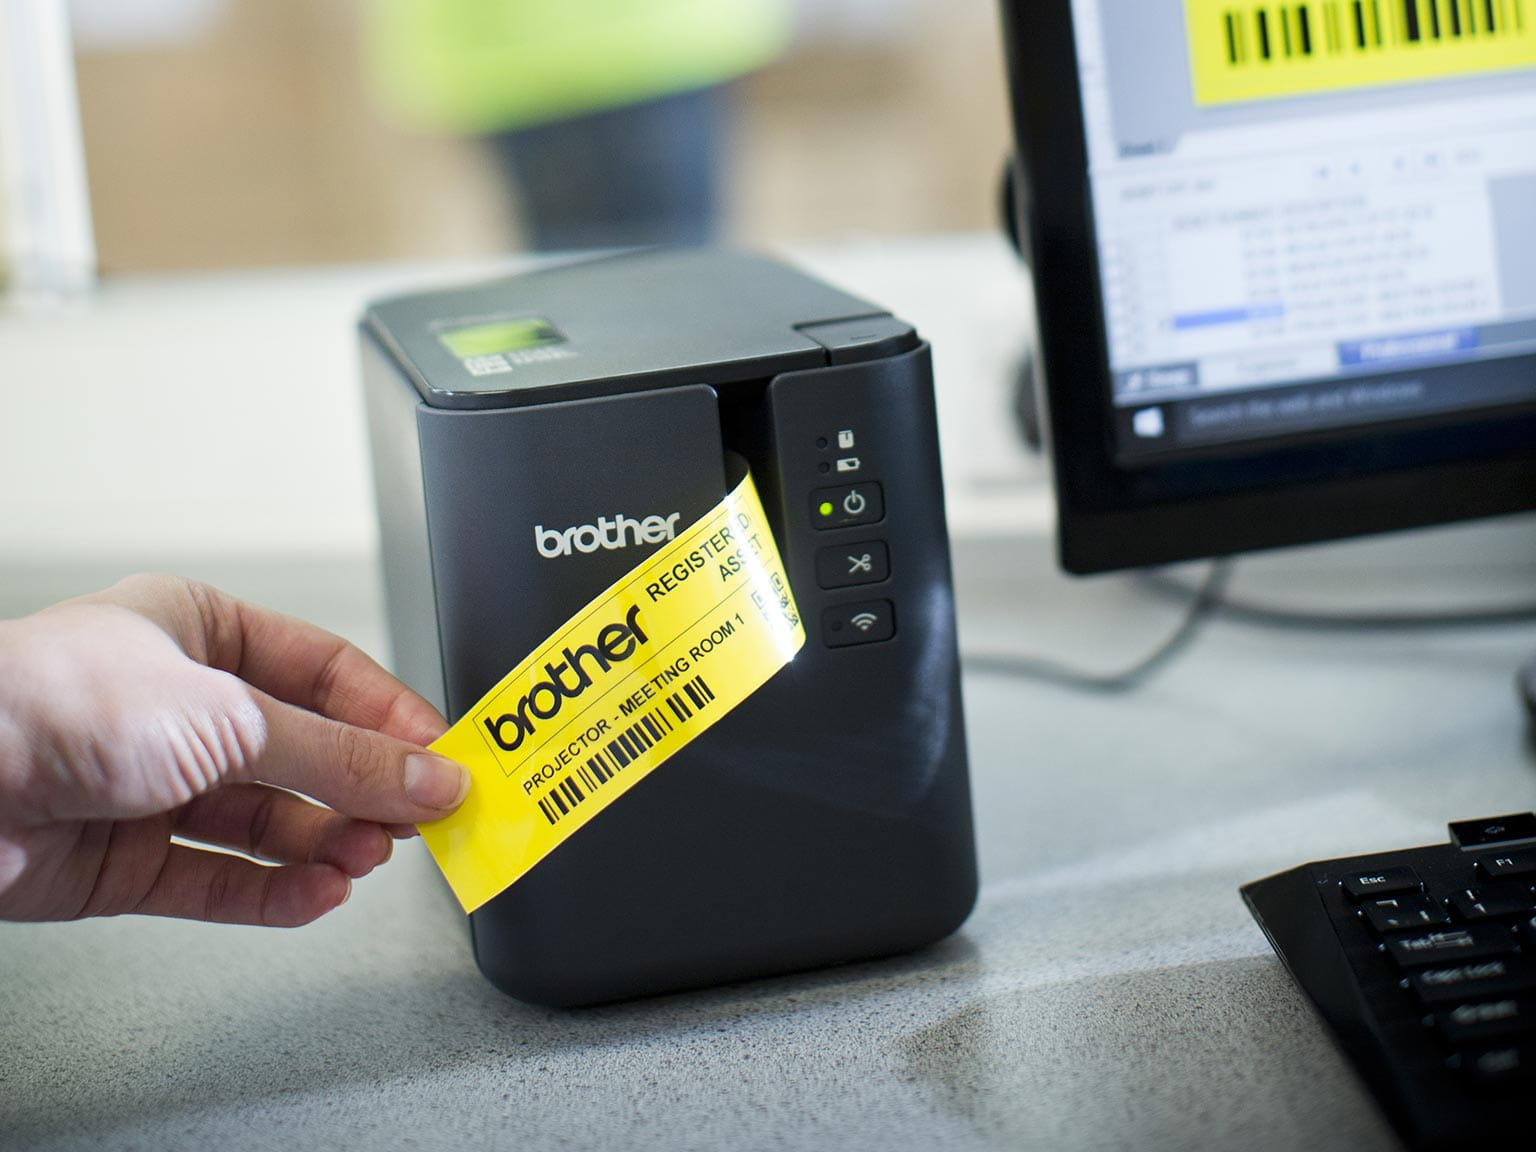 Brother P-touch P900W label printer with a yellow label being printed from a PC